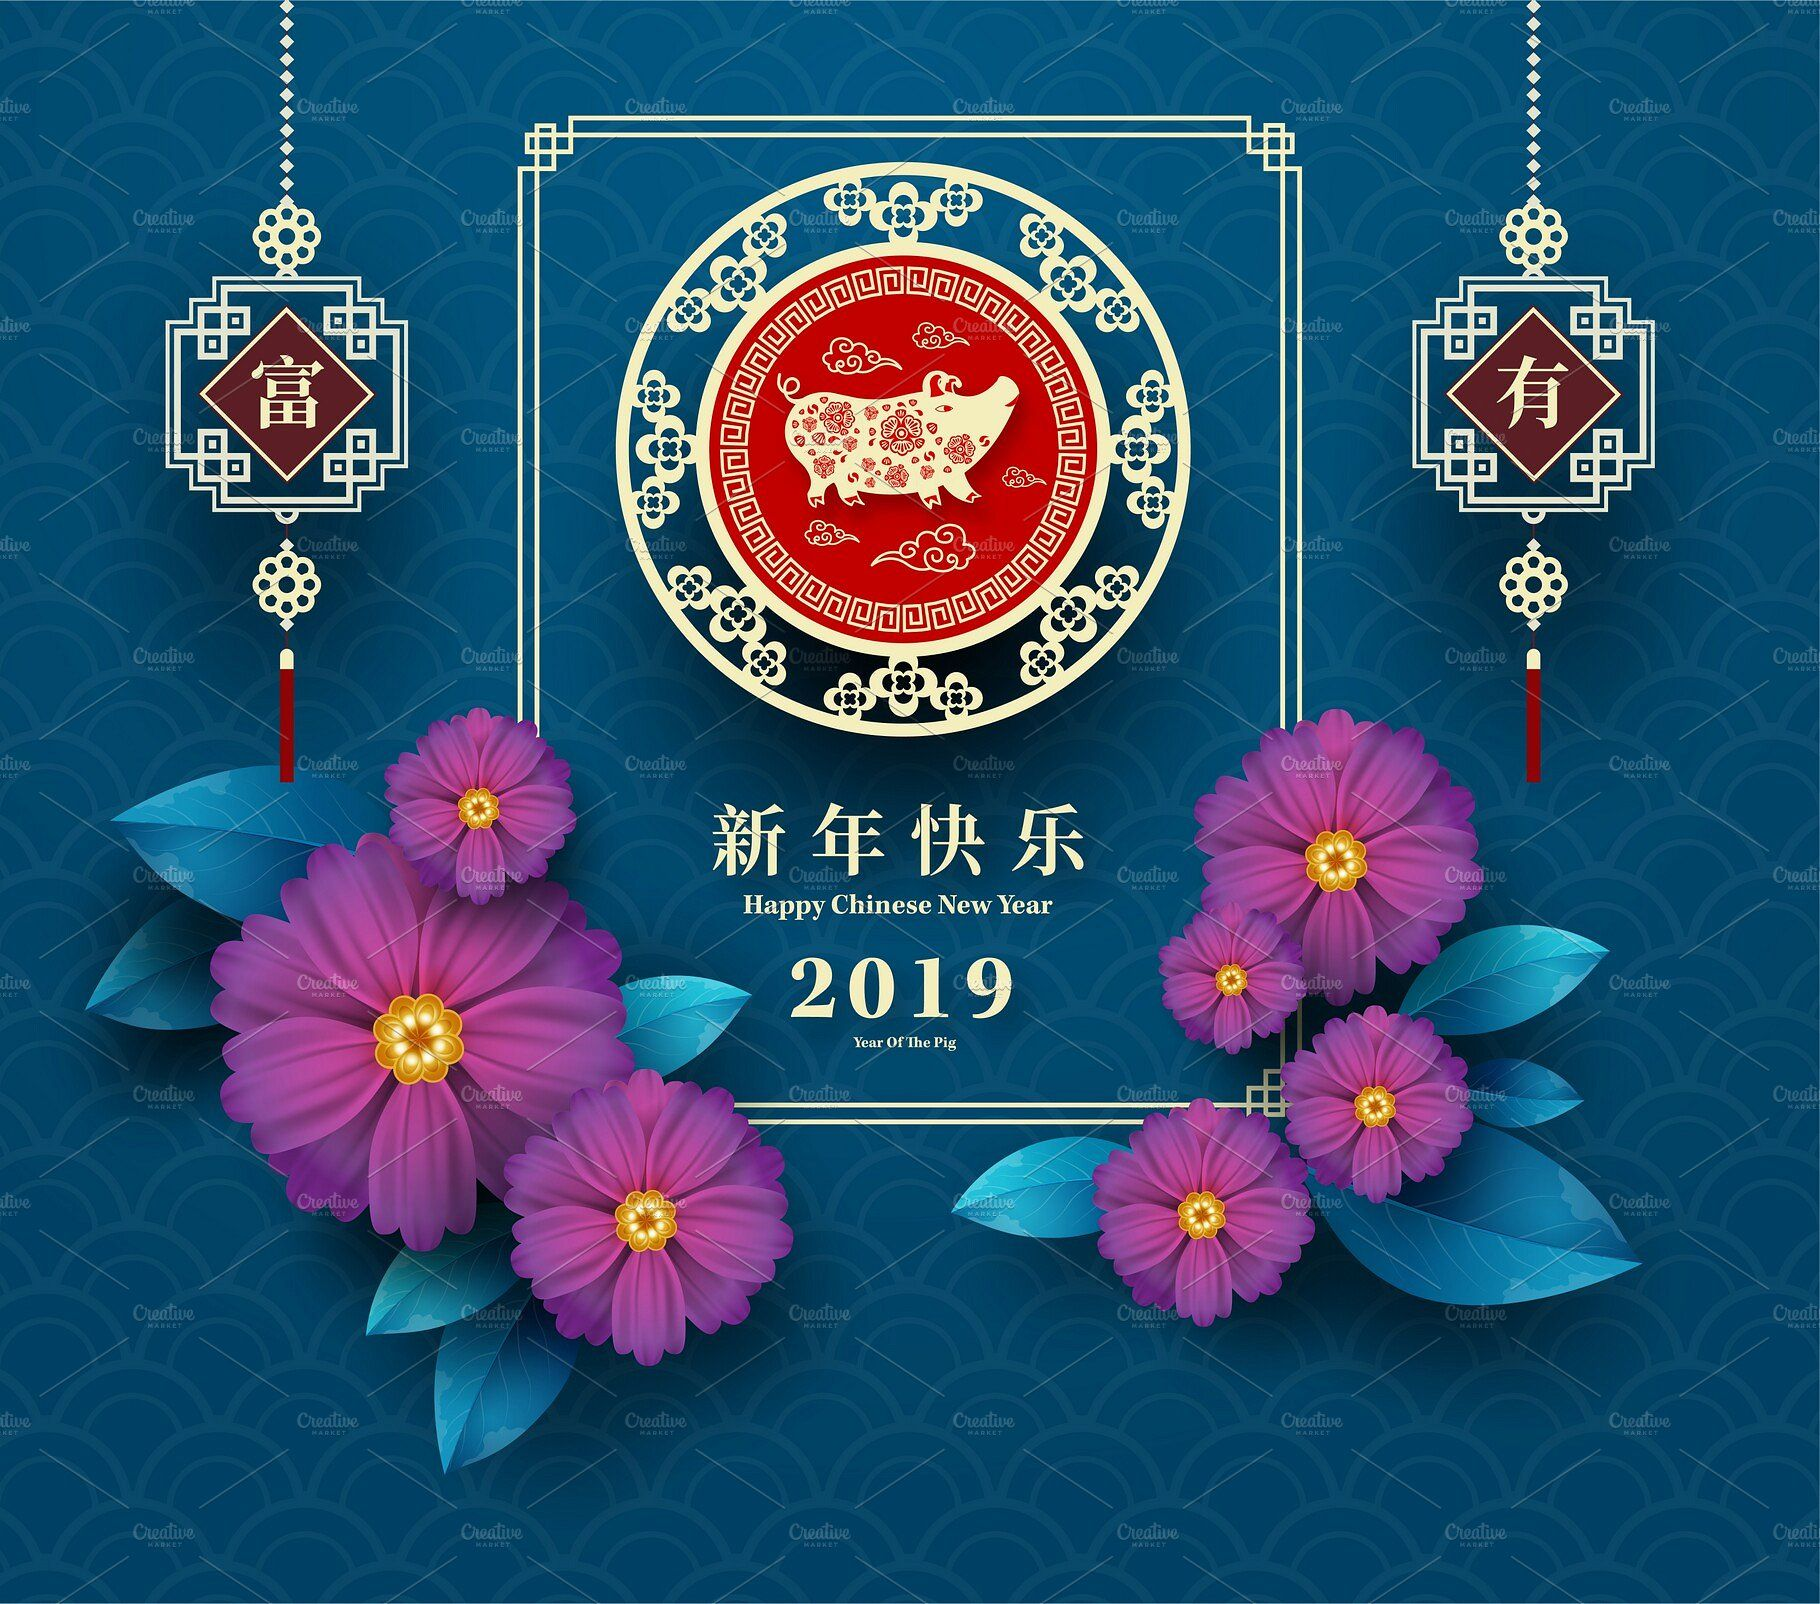 set of 2019 Chinese New Year card editablefully